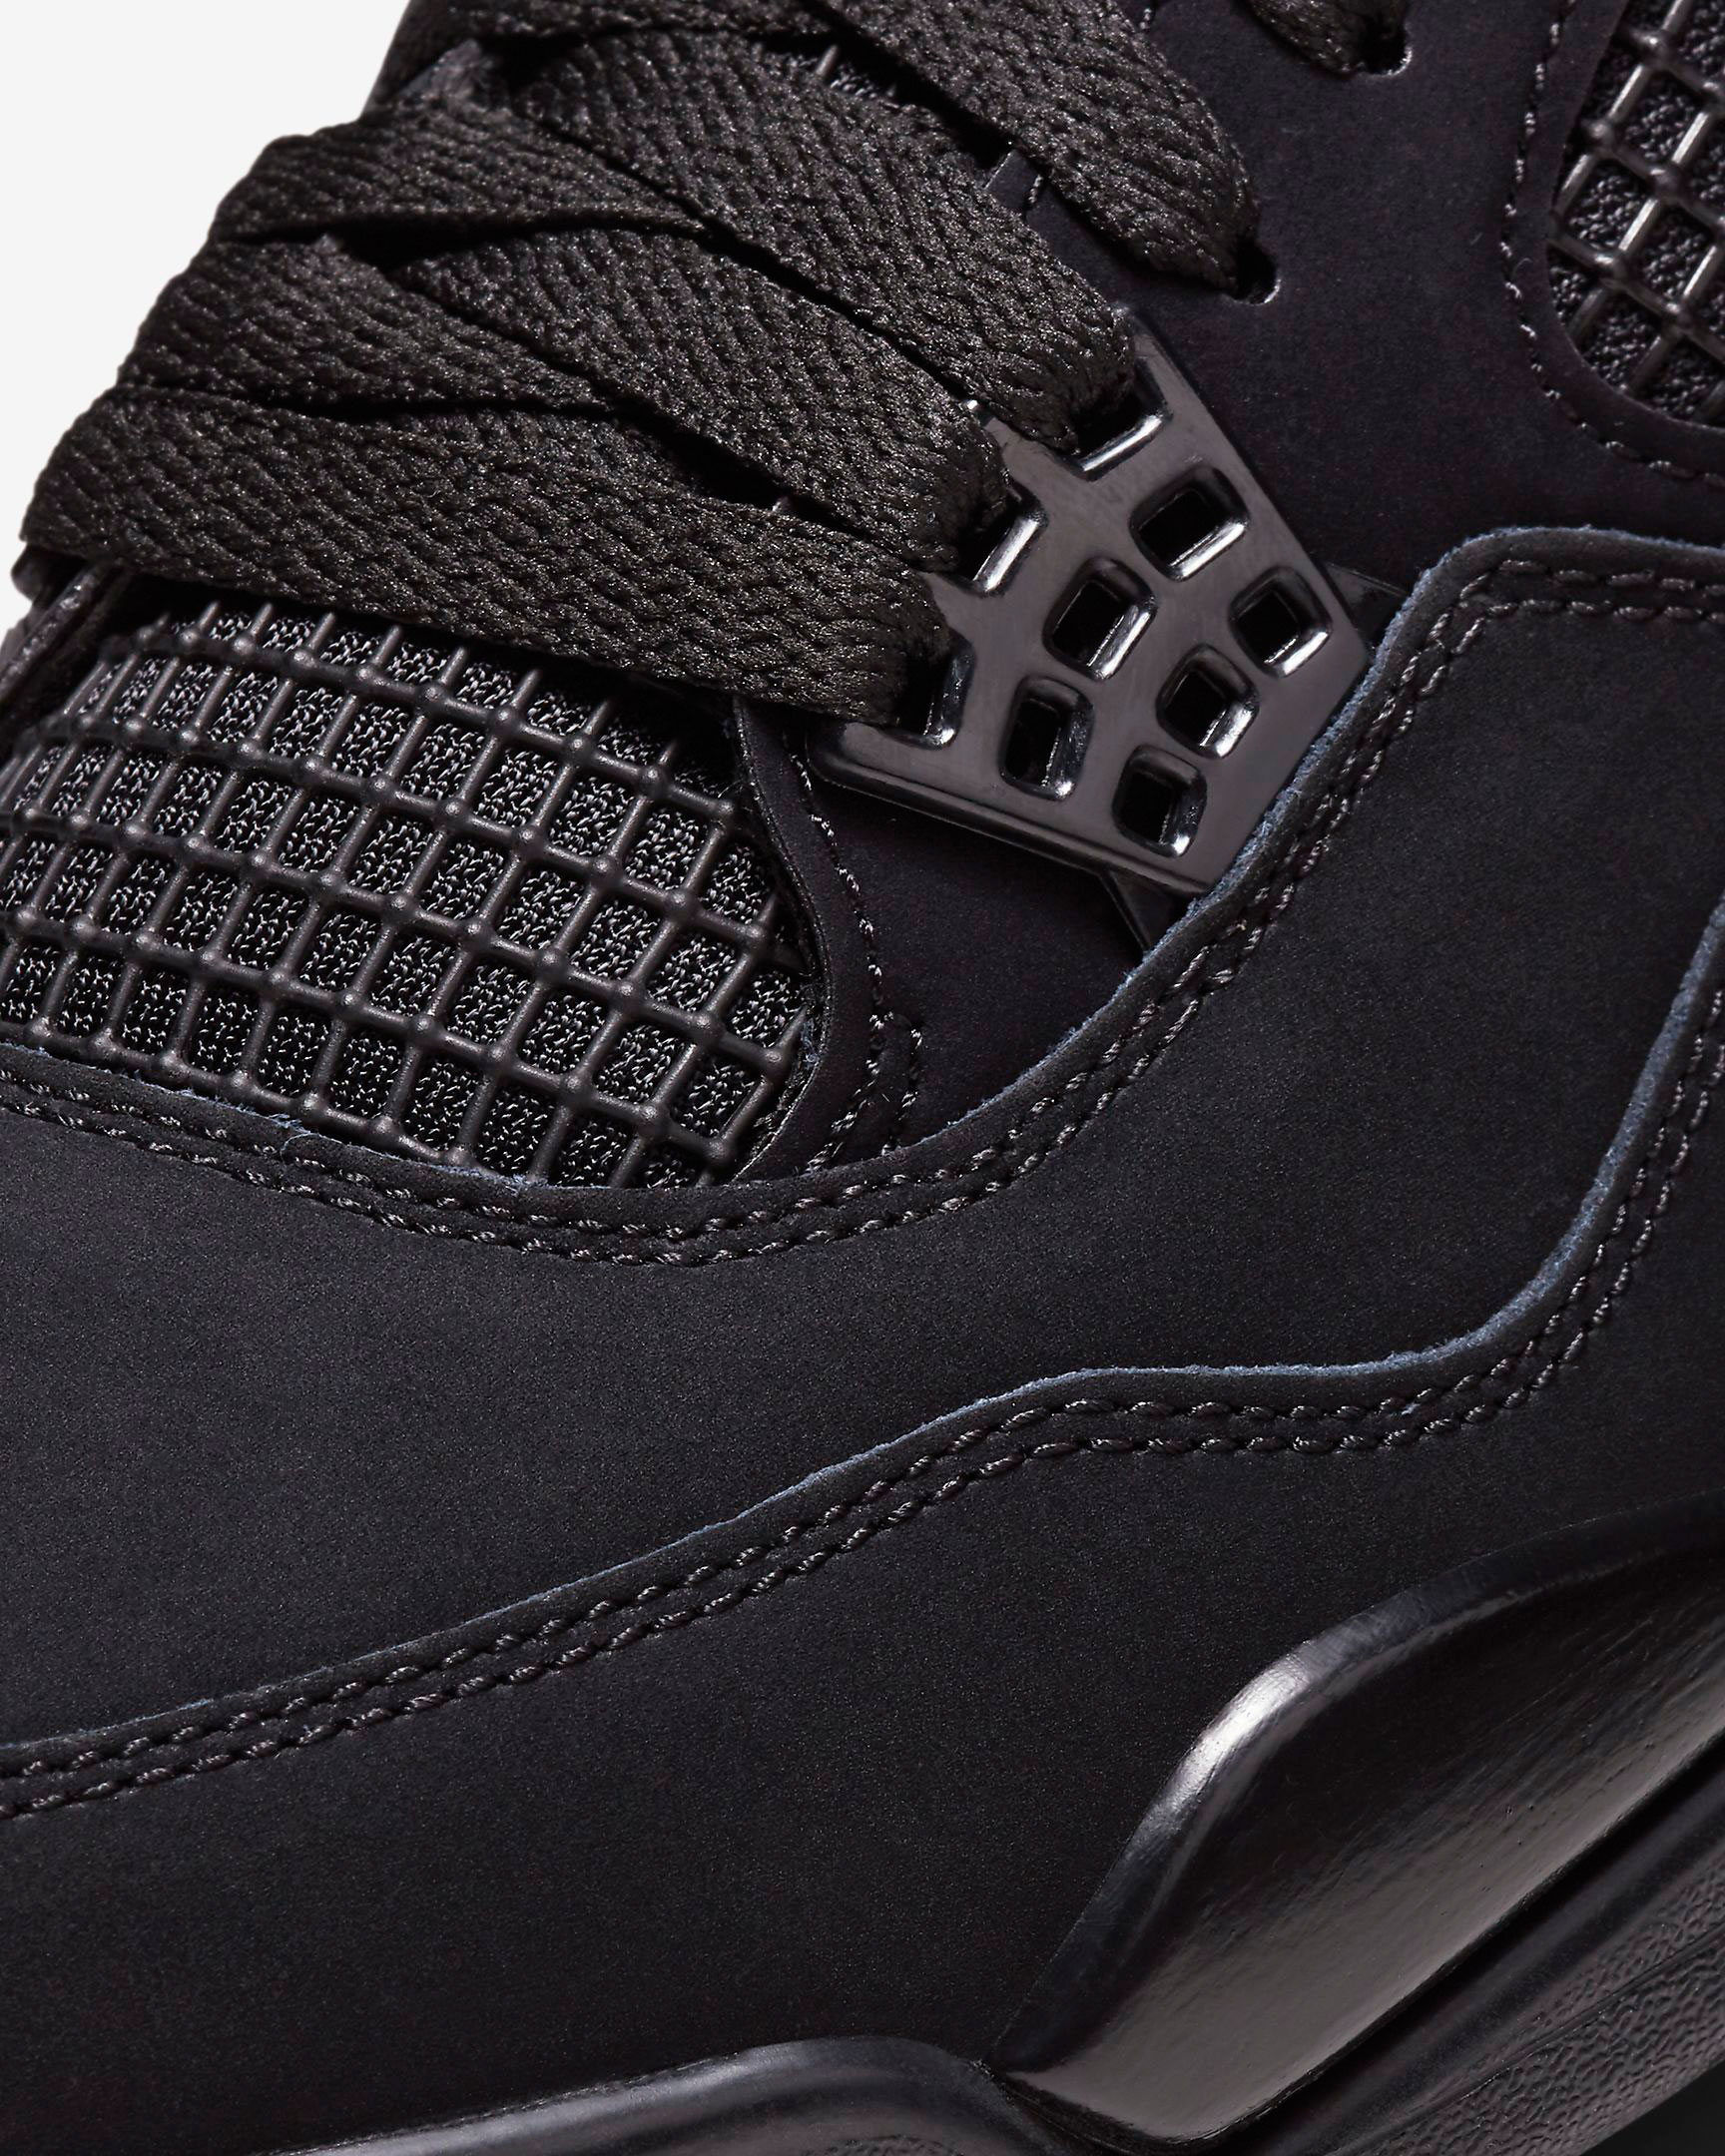 air-jordan-4-black-cat-2020-release-date-7